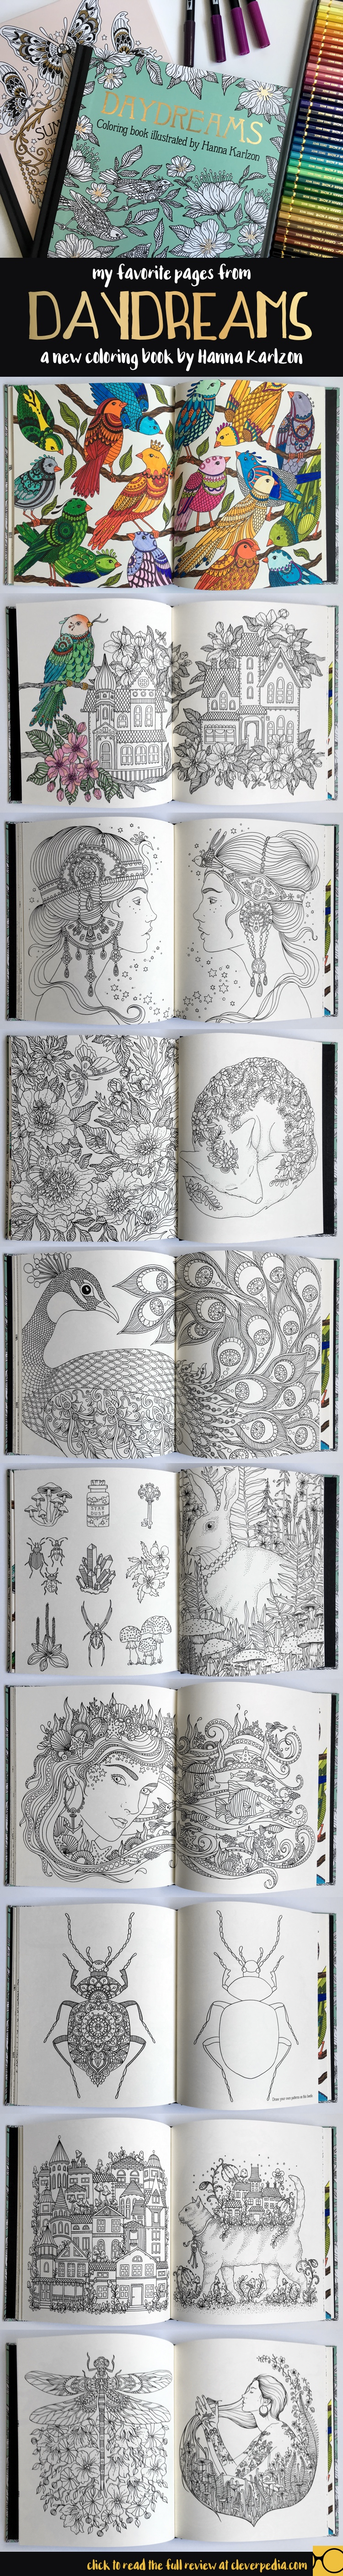 hanna karlzon u0027s gorgeous swedish coloring books released in us